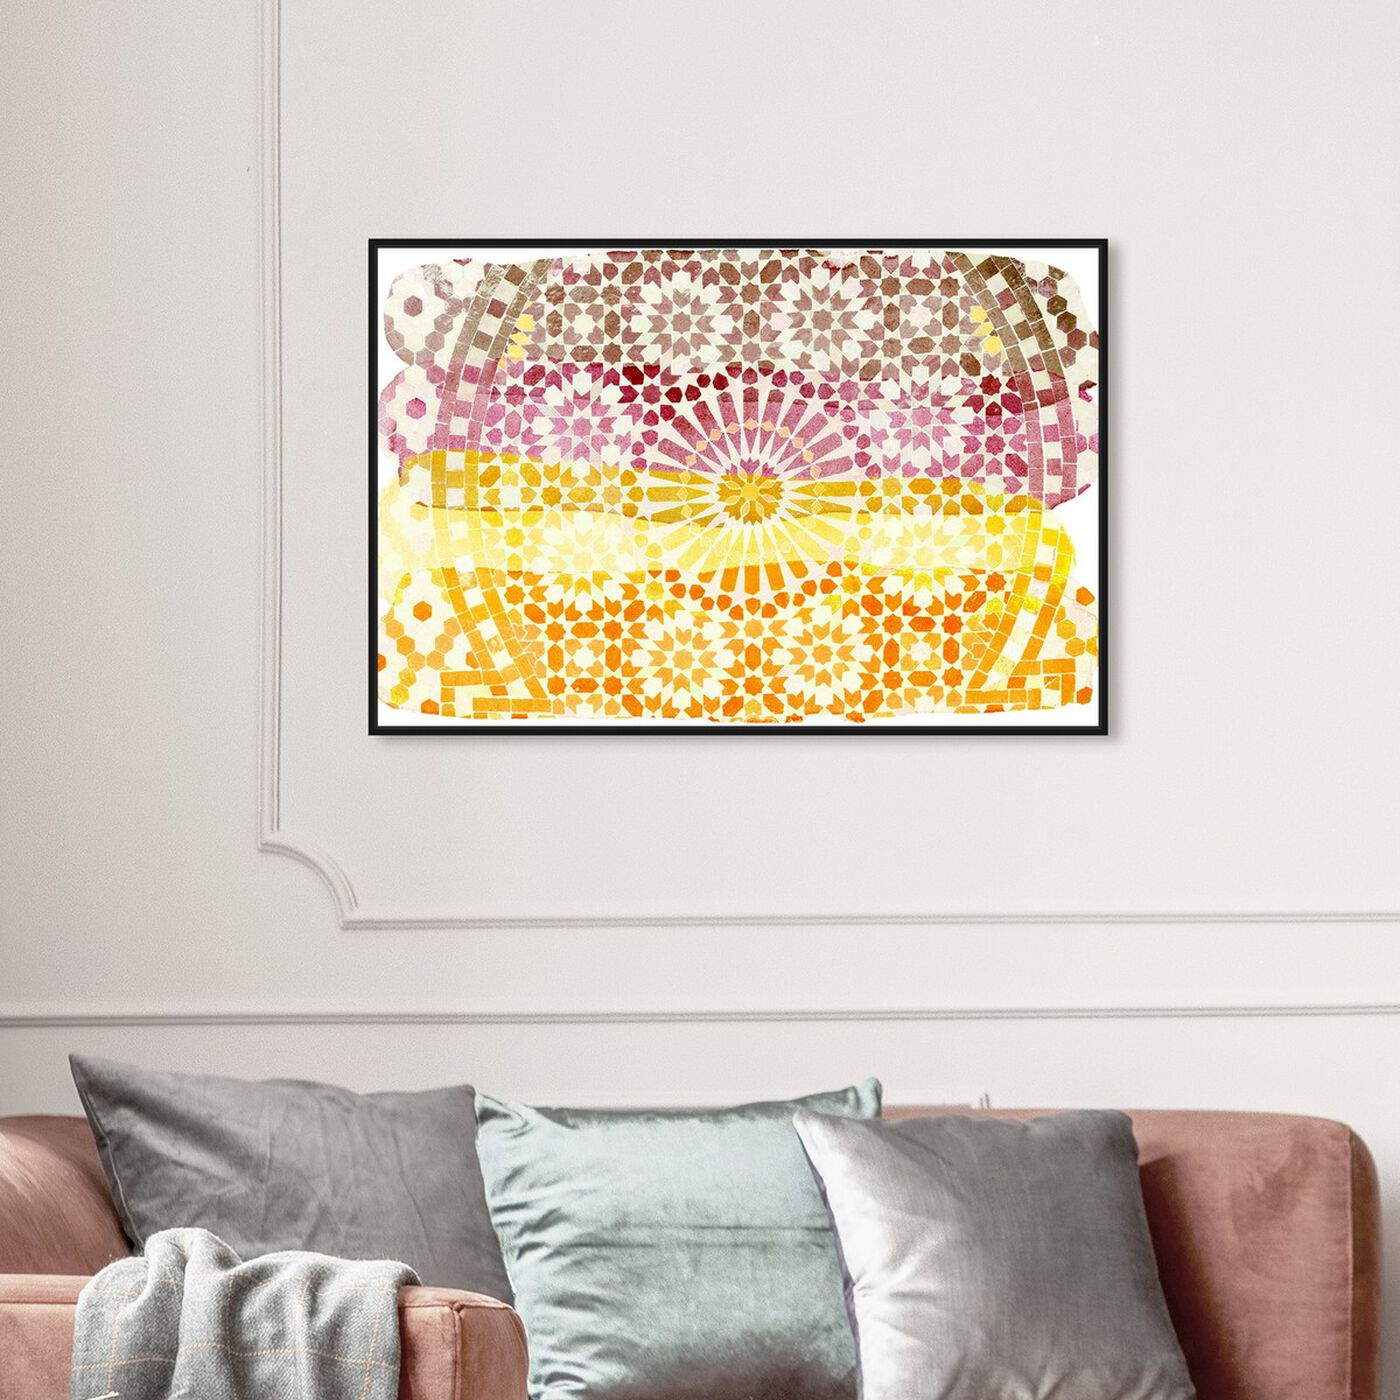 Hanging view of Arabian Nights Warm featuring abstract and patterns art.